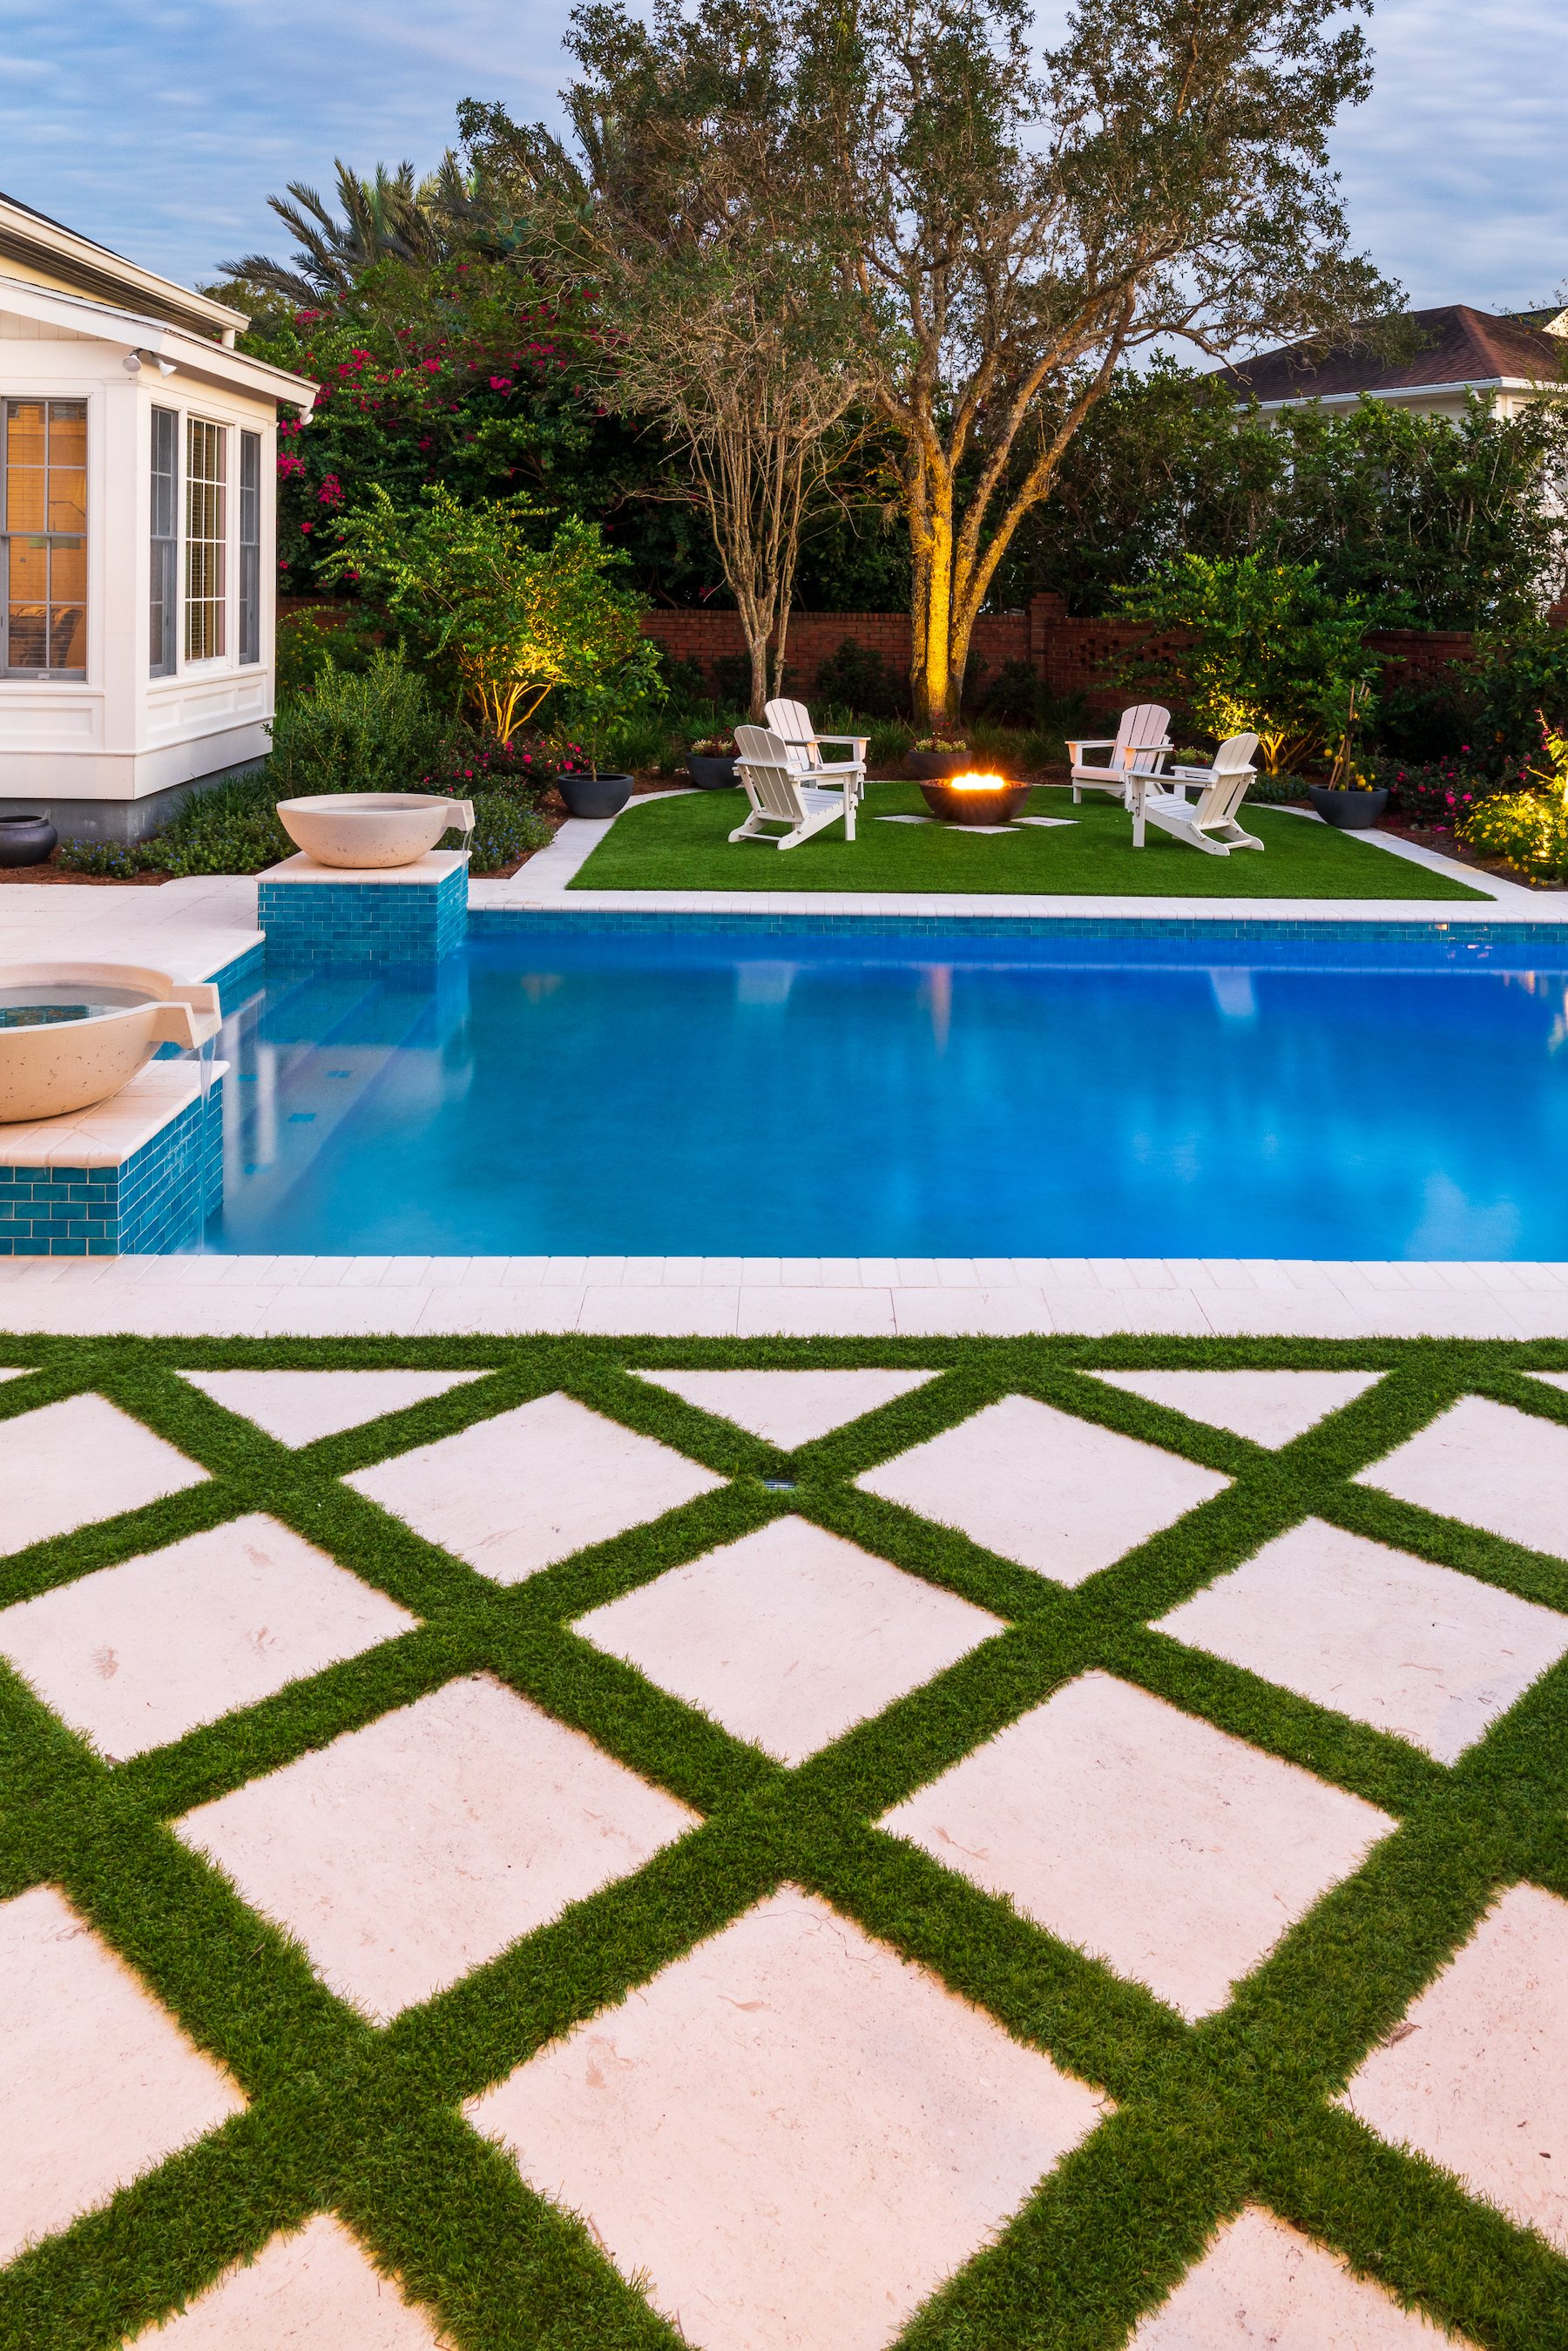 Lattice patterned out of white travertine